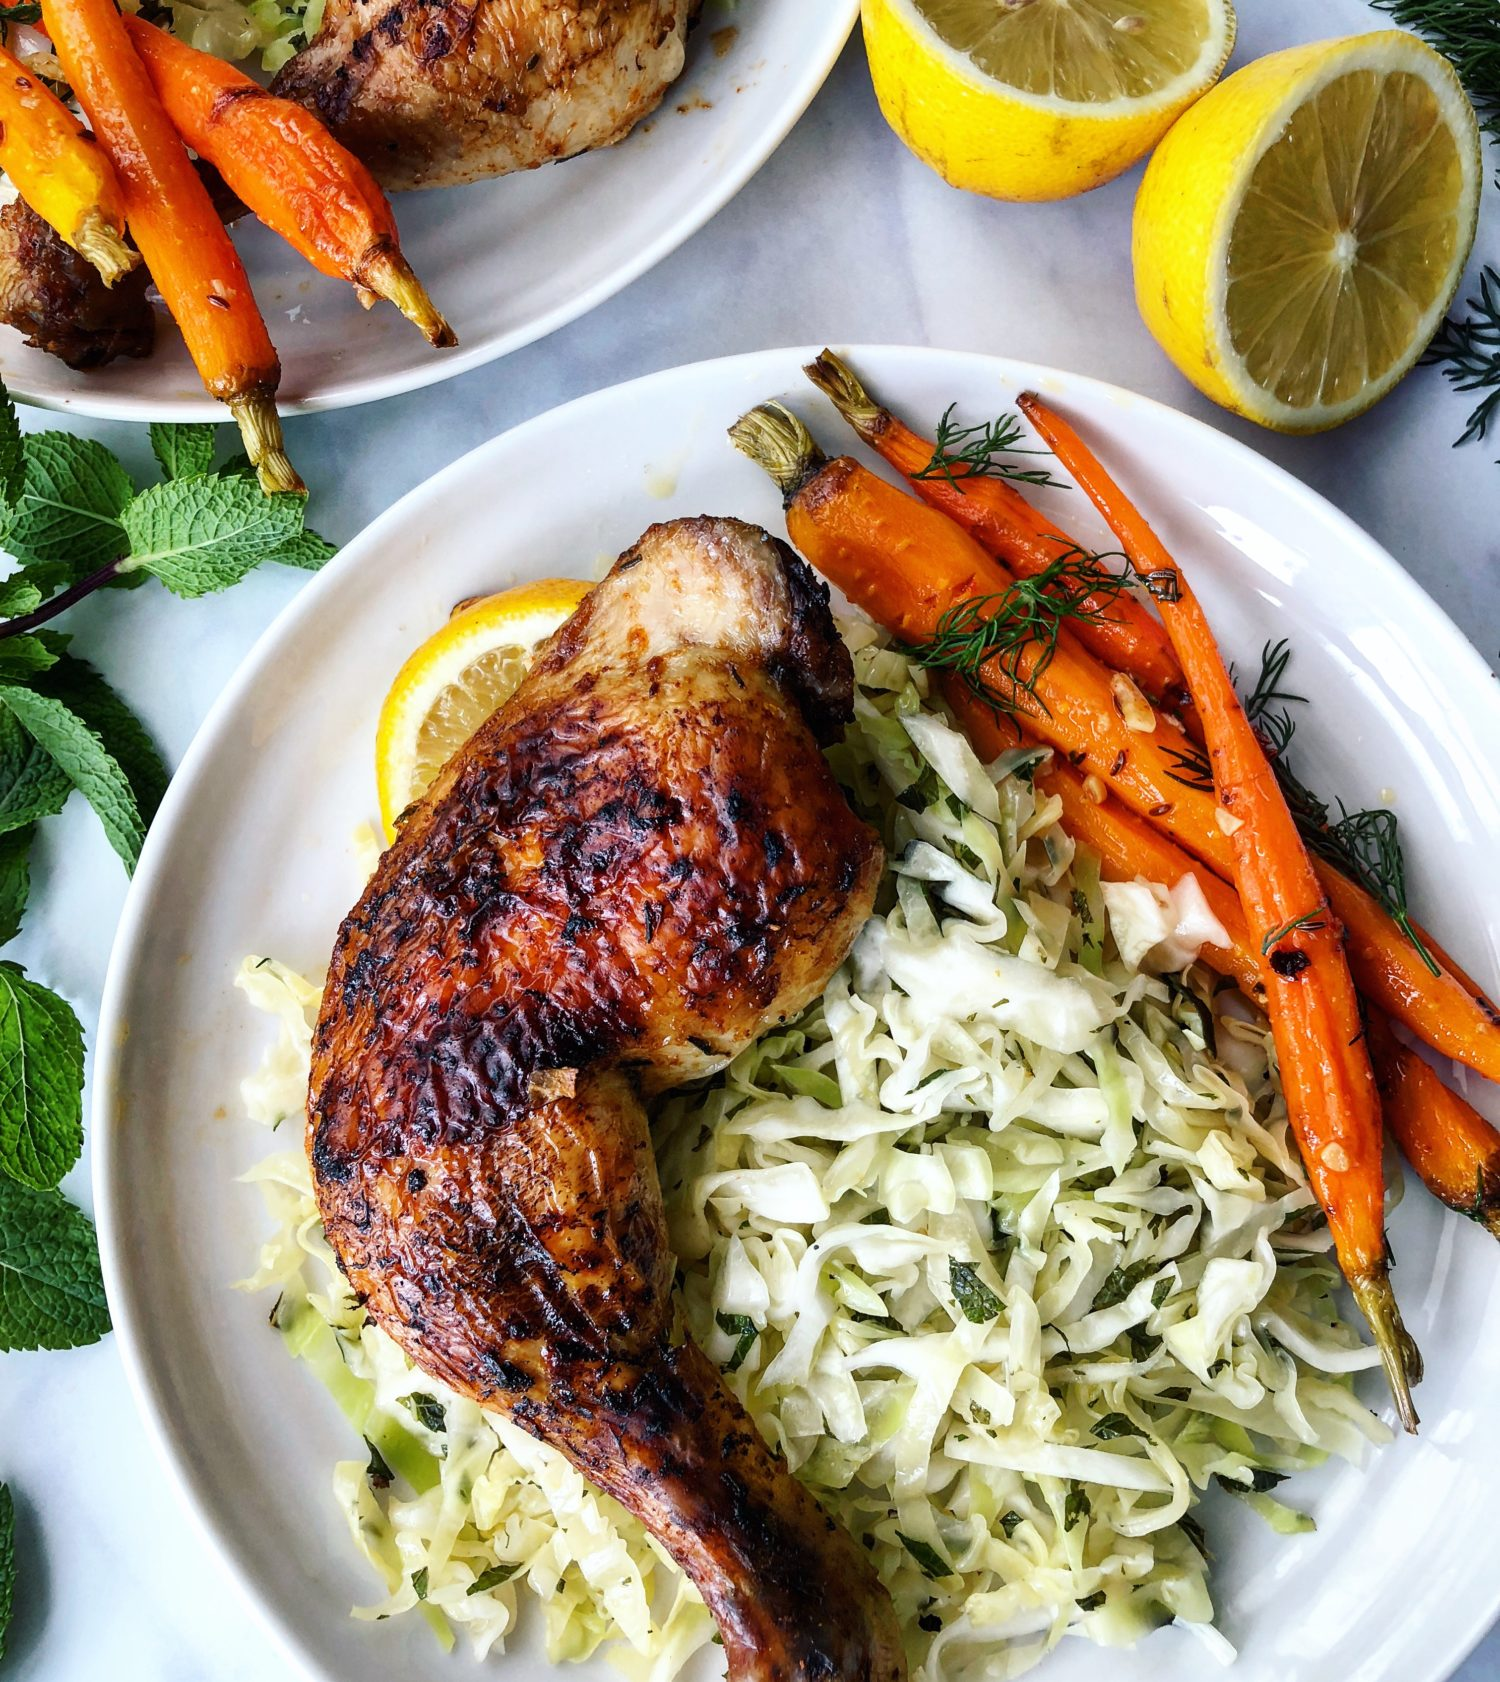 Juicy Lebanese Chicken, Malfouf Salad and Tunisian Carrots